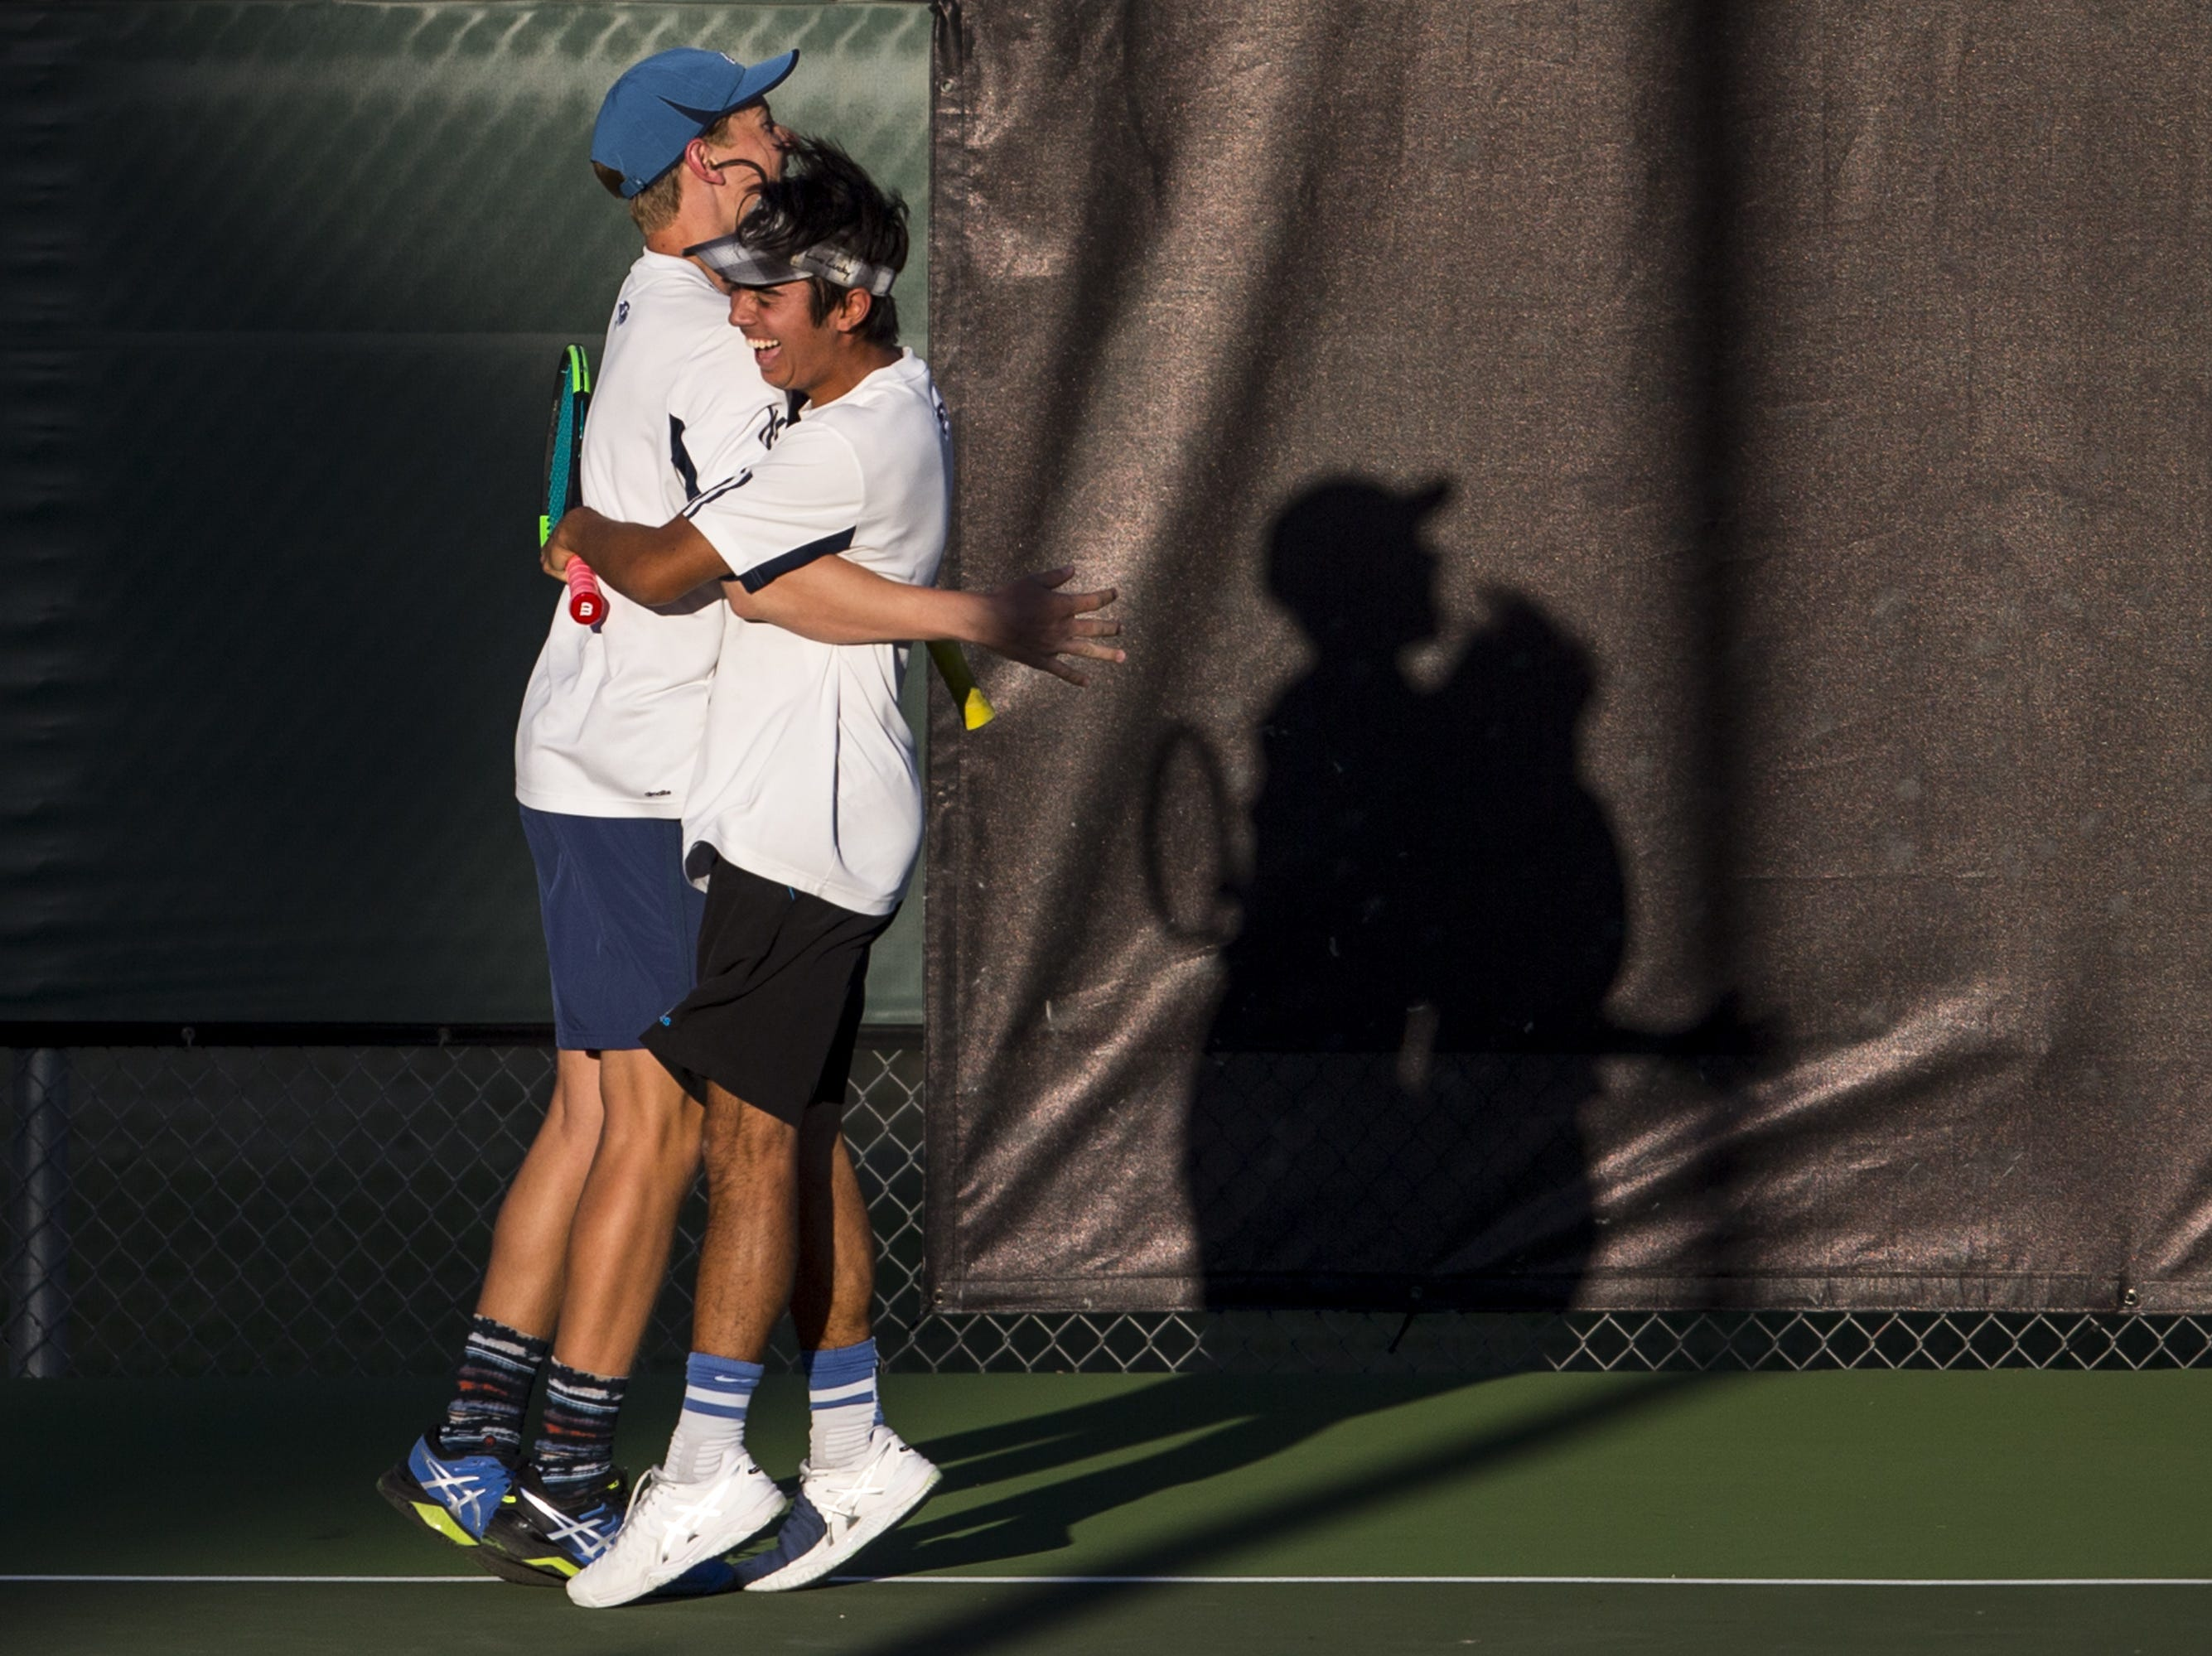 Cactus Shadows' Ryan Hildebrand (left) and Harry Carrozza celebrate after defeating Catalina Foothills for the Division II Boys Tennis Doubles State Championship on Monday, April 29, 2019, at Whiteman Tennis Center in Tempe, Ariz.